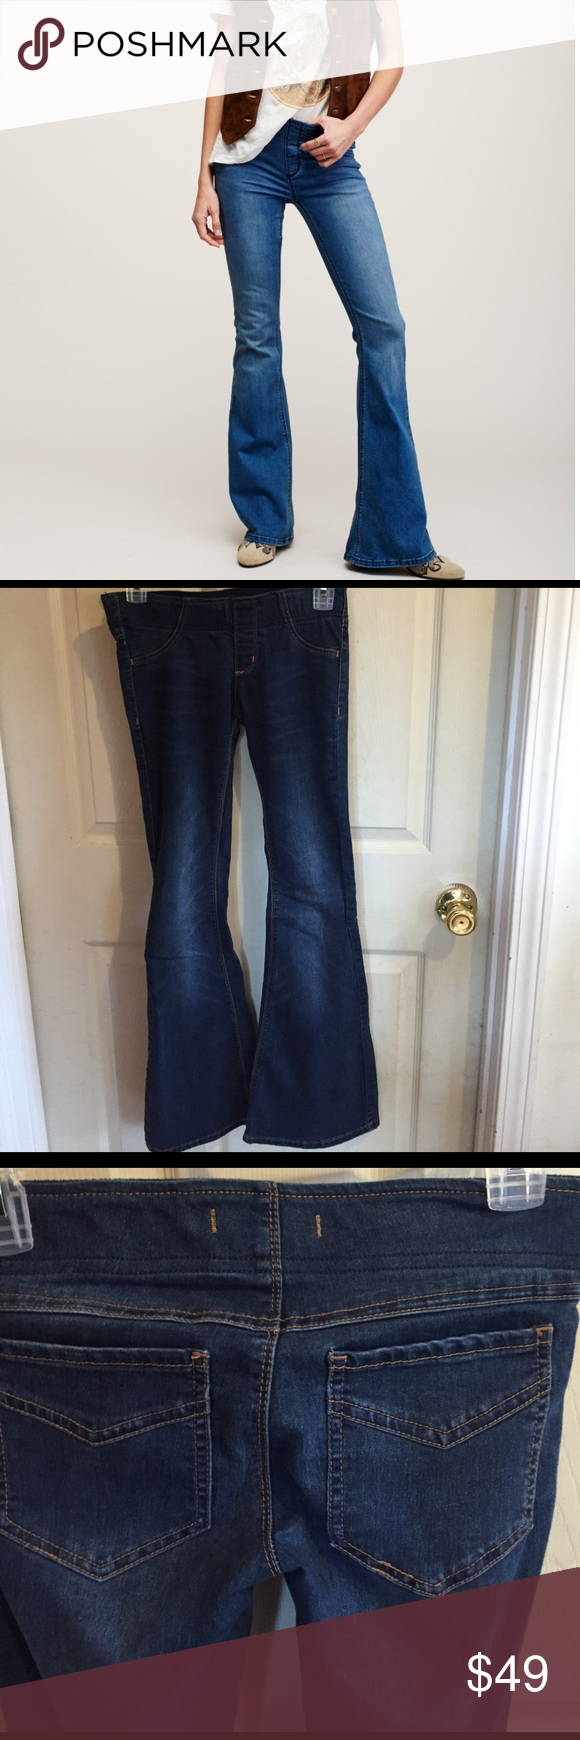 """Free People Pull On Kick Flare Size 25 Short. Cotton/polyester/spandex blend. Waist is about 14"""" flat no dip; rise is about 7""""; inseam is about 30""""; ankle is about 10"""" flat. Very snug fit, and run a bit small. Gently preowned. Free People Jeans Flare & Wide Leg"""